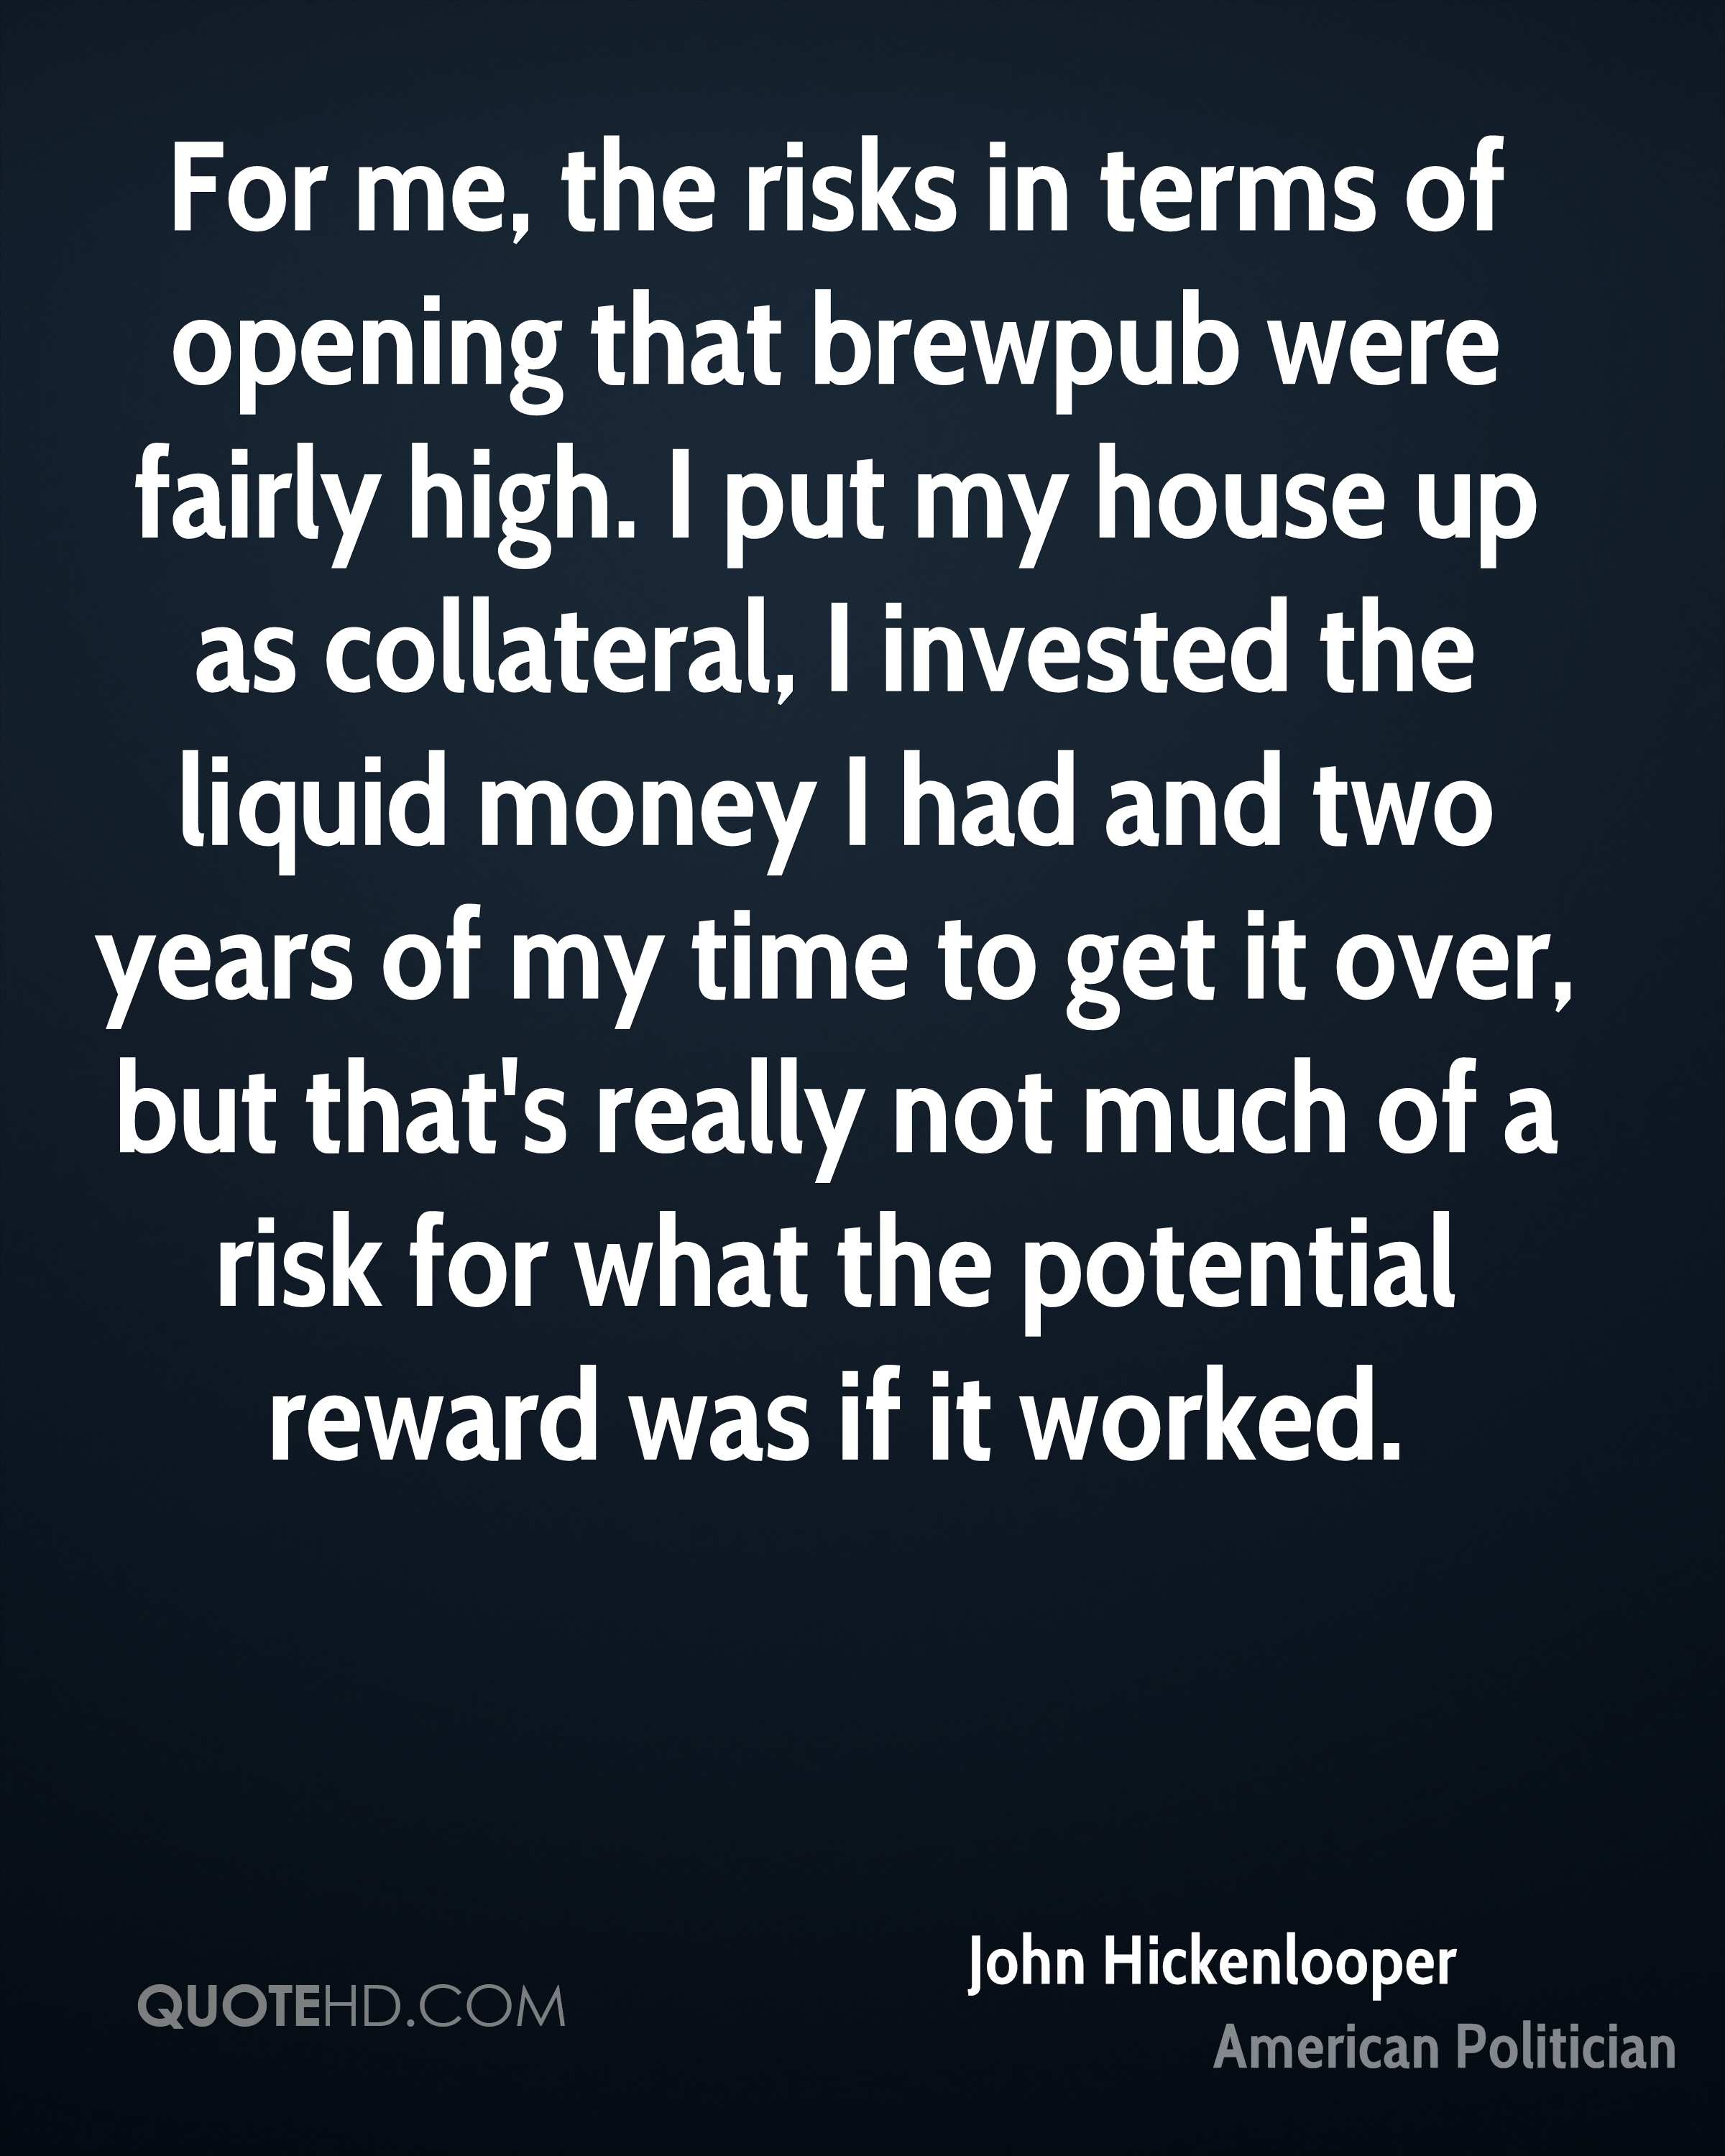 For me, the risks in terms of opening that brewpub were fairly high. I put my house up as collateral, I invested the liquid money I had and two years of my time to get it over, but that's really not much of a risk for what the potential reward was if it worked.